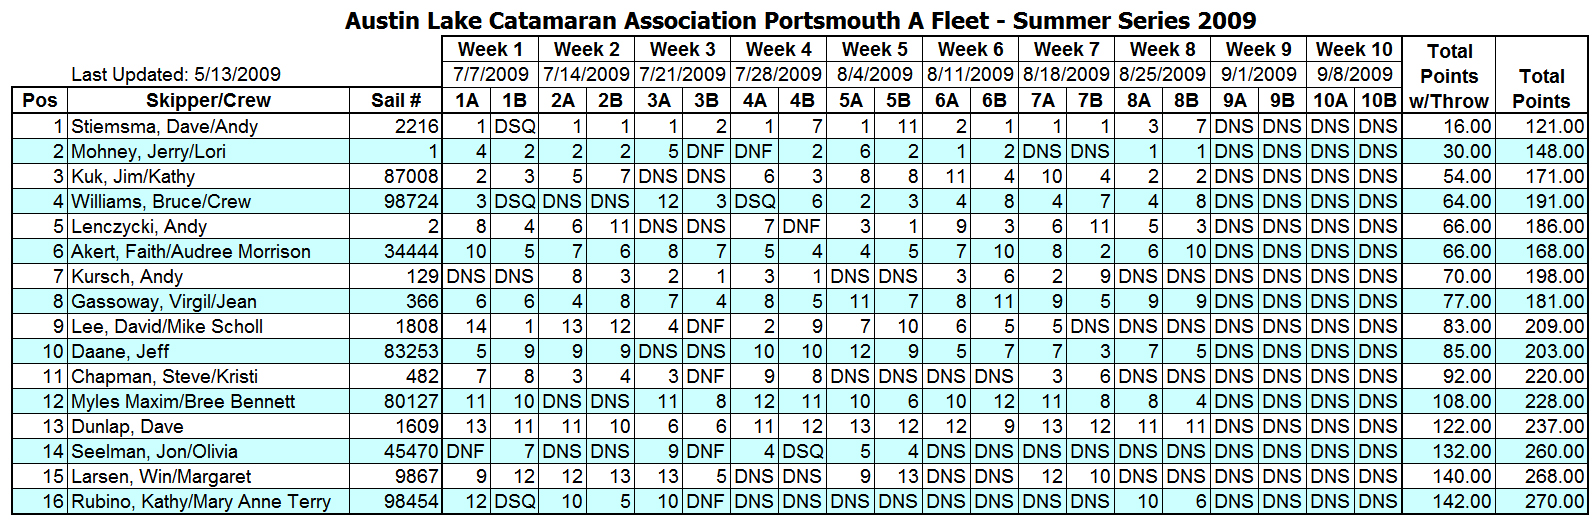 2009 Summer Portsmouth A Fleet Results